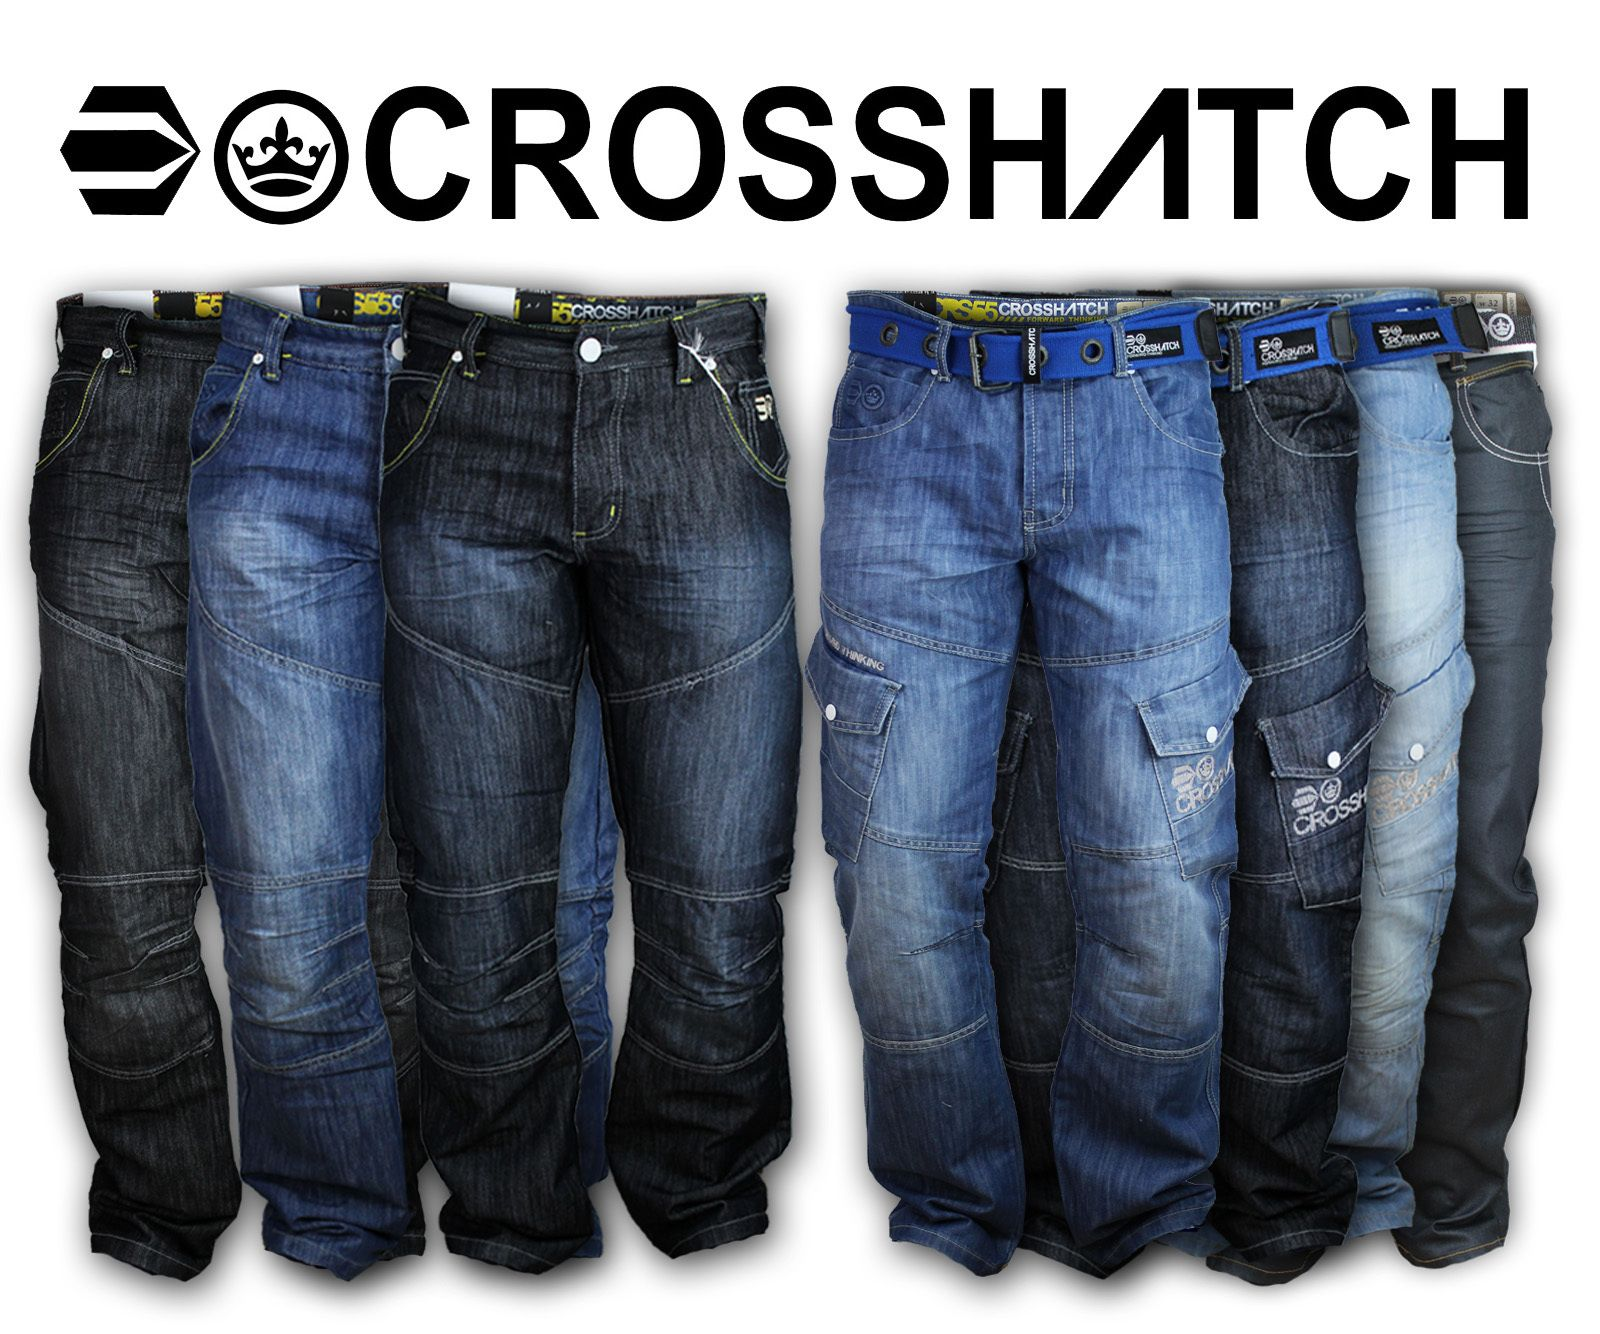 Men's Jeans | Mens Jeans Crosshatch Denim Pants Cargo Combat ...